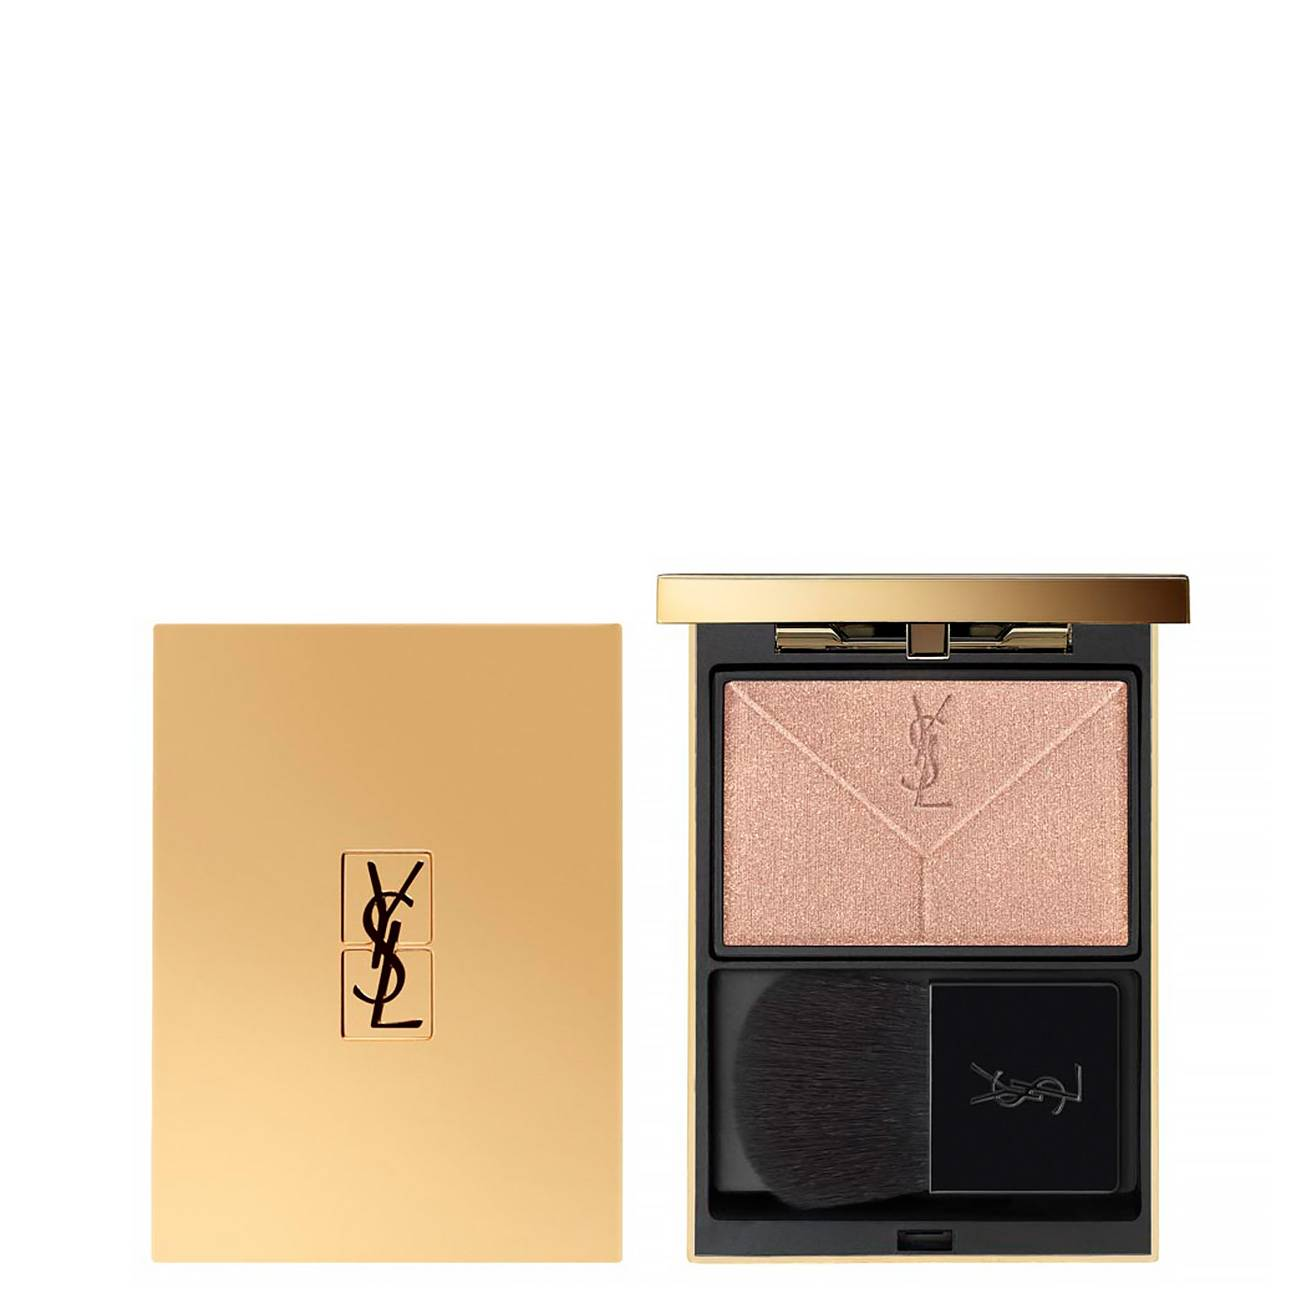 Couture Highlighter 1 3gr Yves Saint Laurent imagine 2021 bestvalue.eu